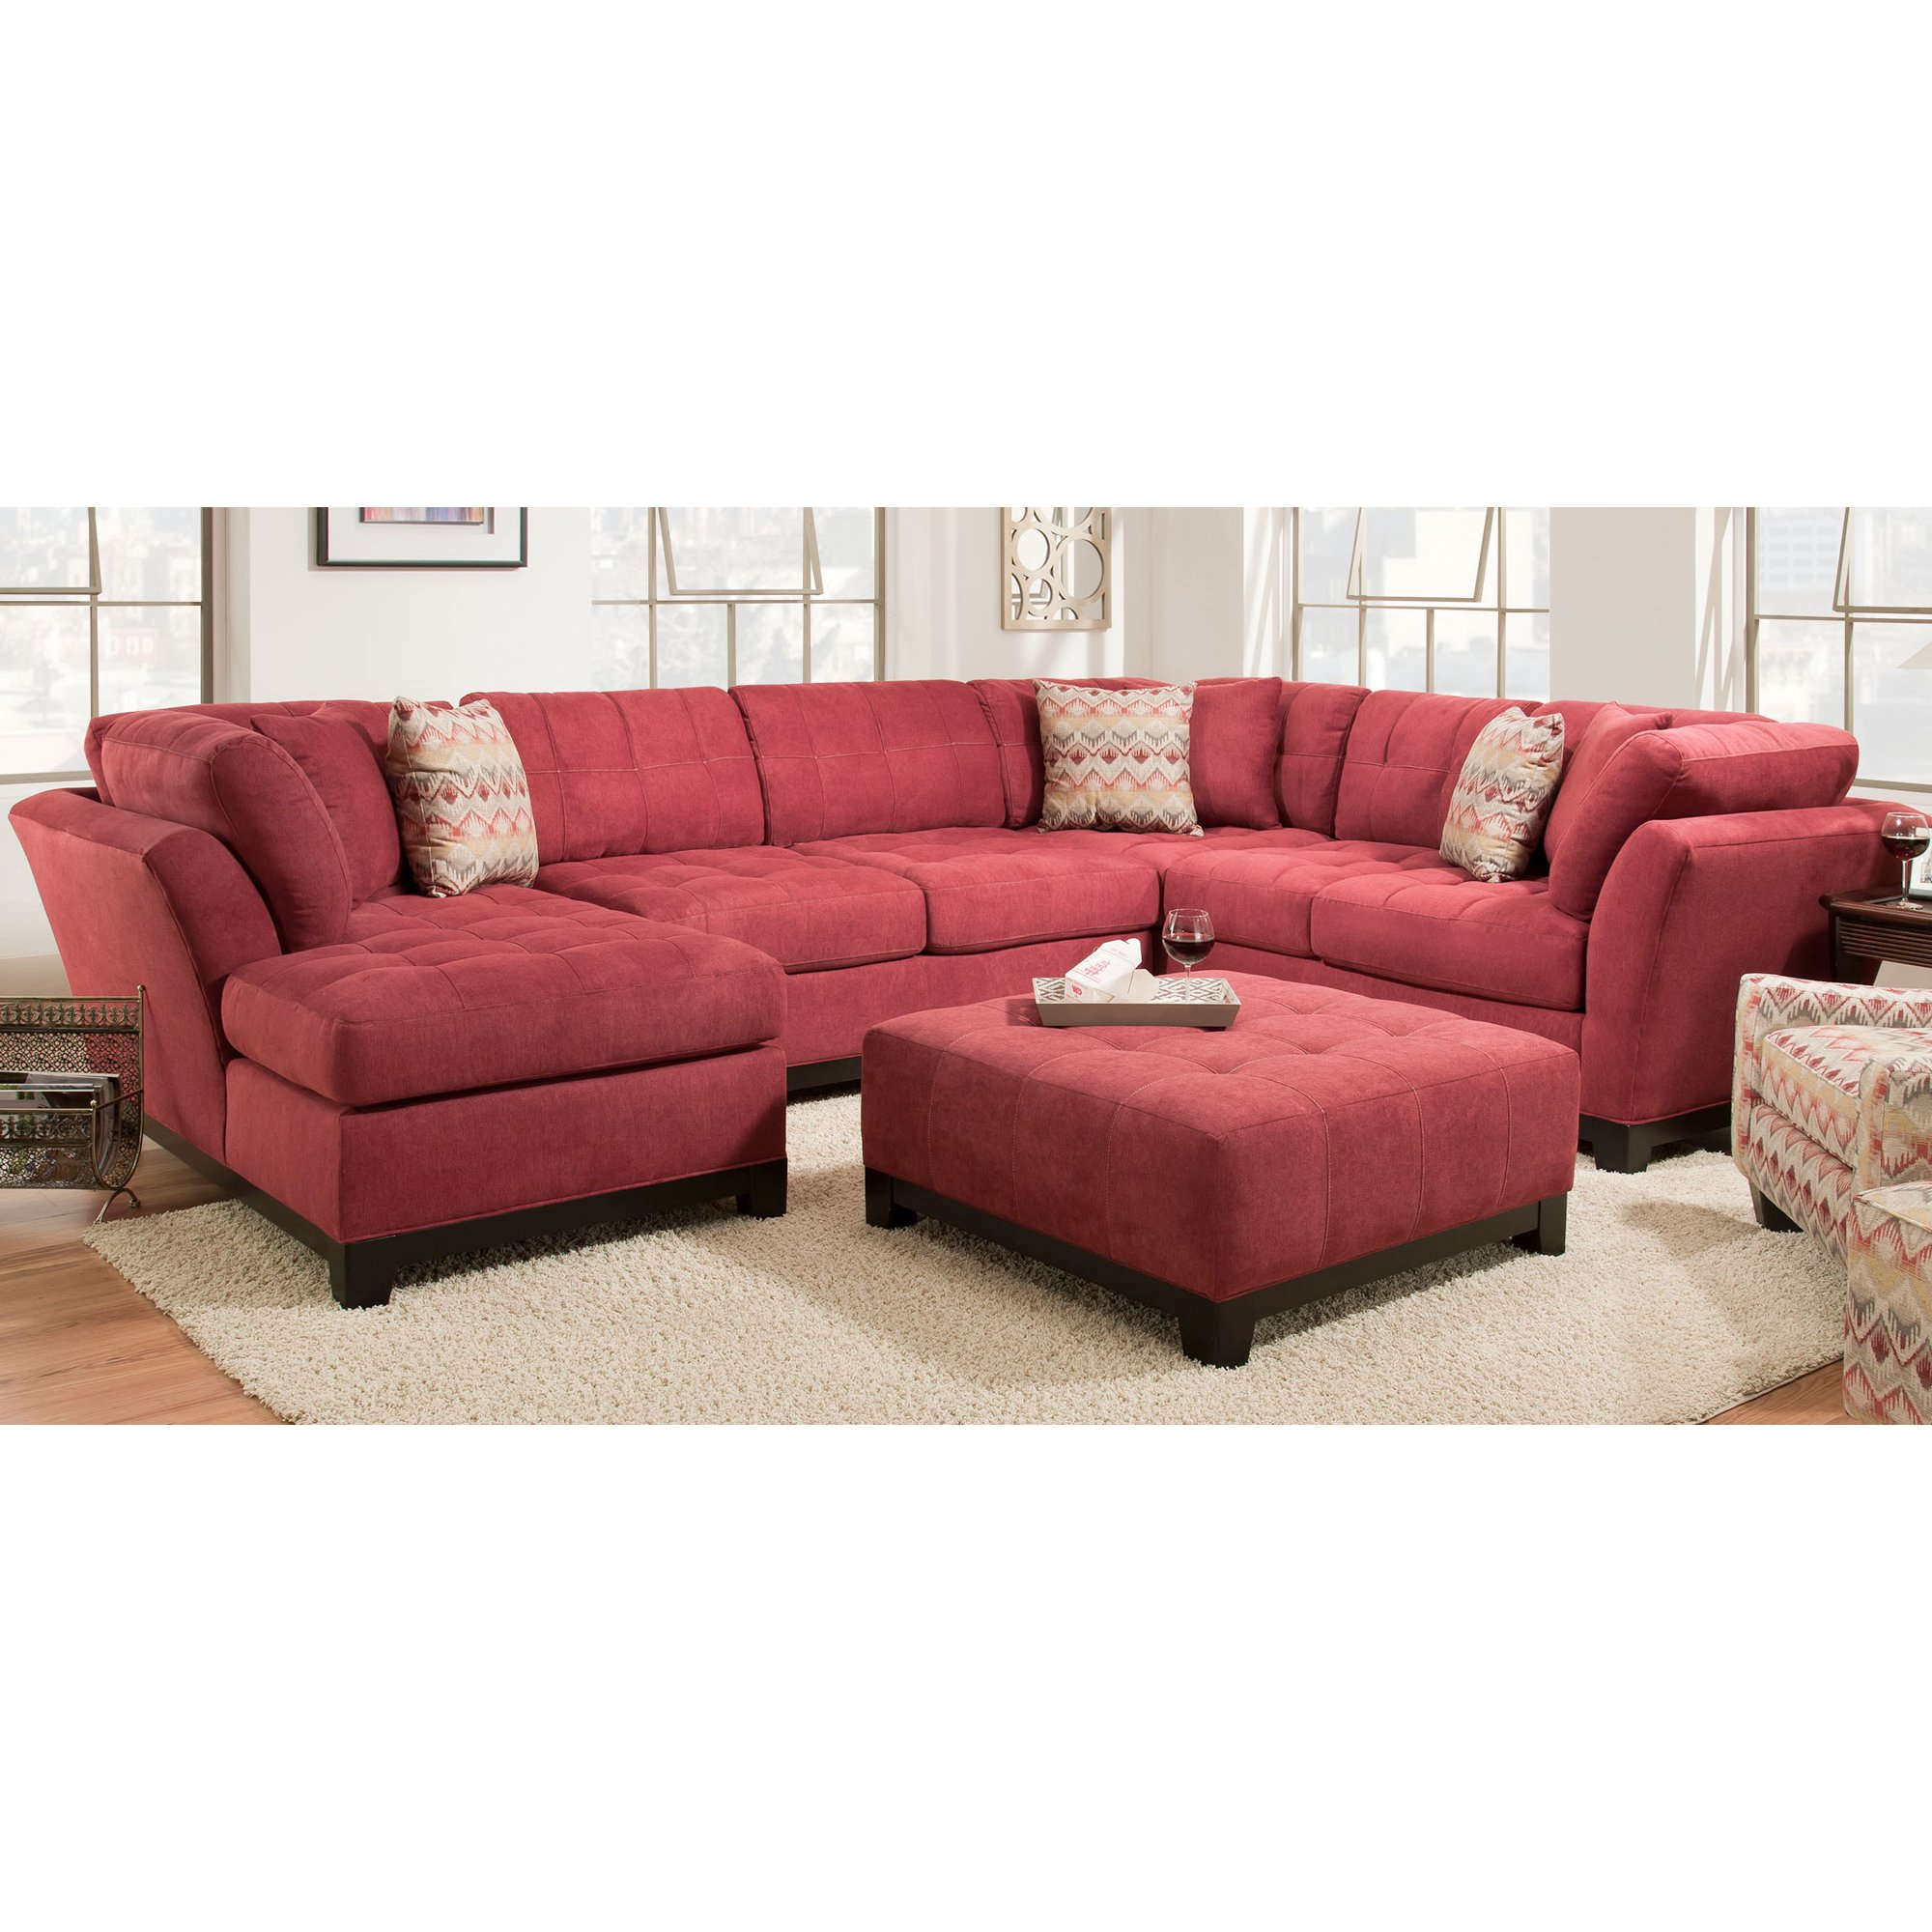 Red Upholstered 3 Piece Casual Contemporary Sectional   Loxley   RC Willey  Furniture Store